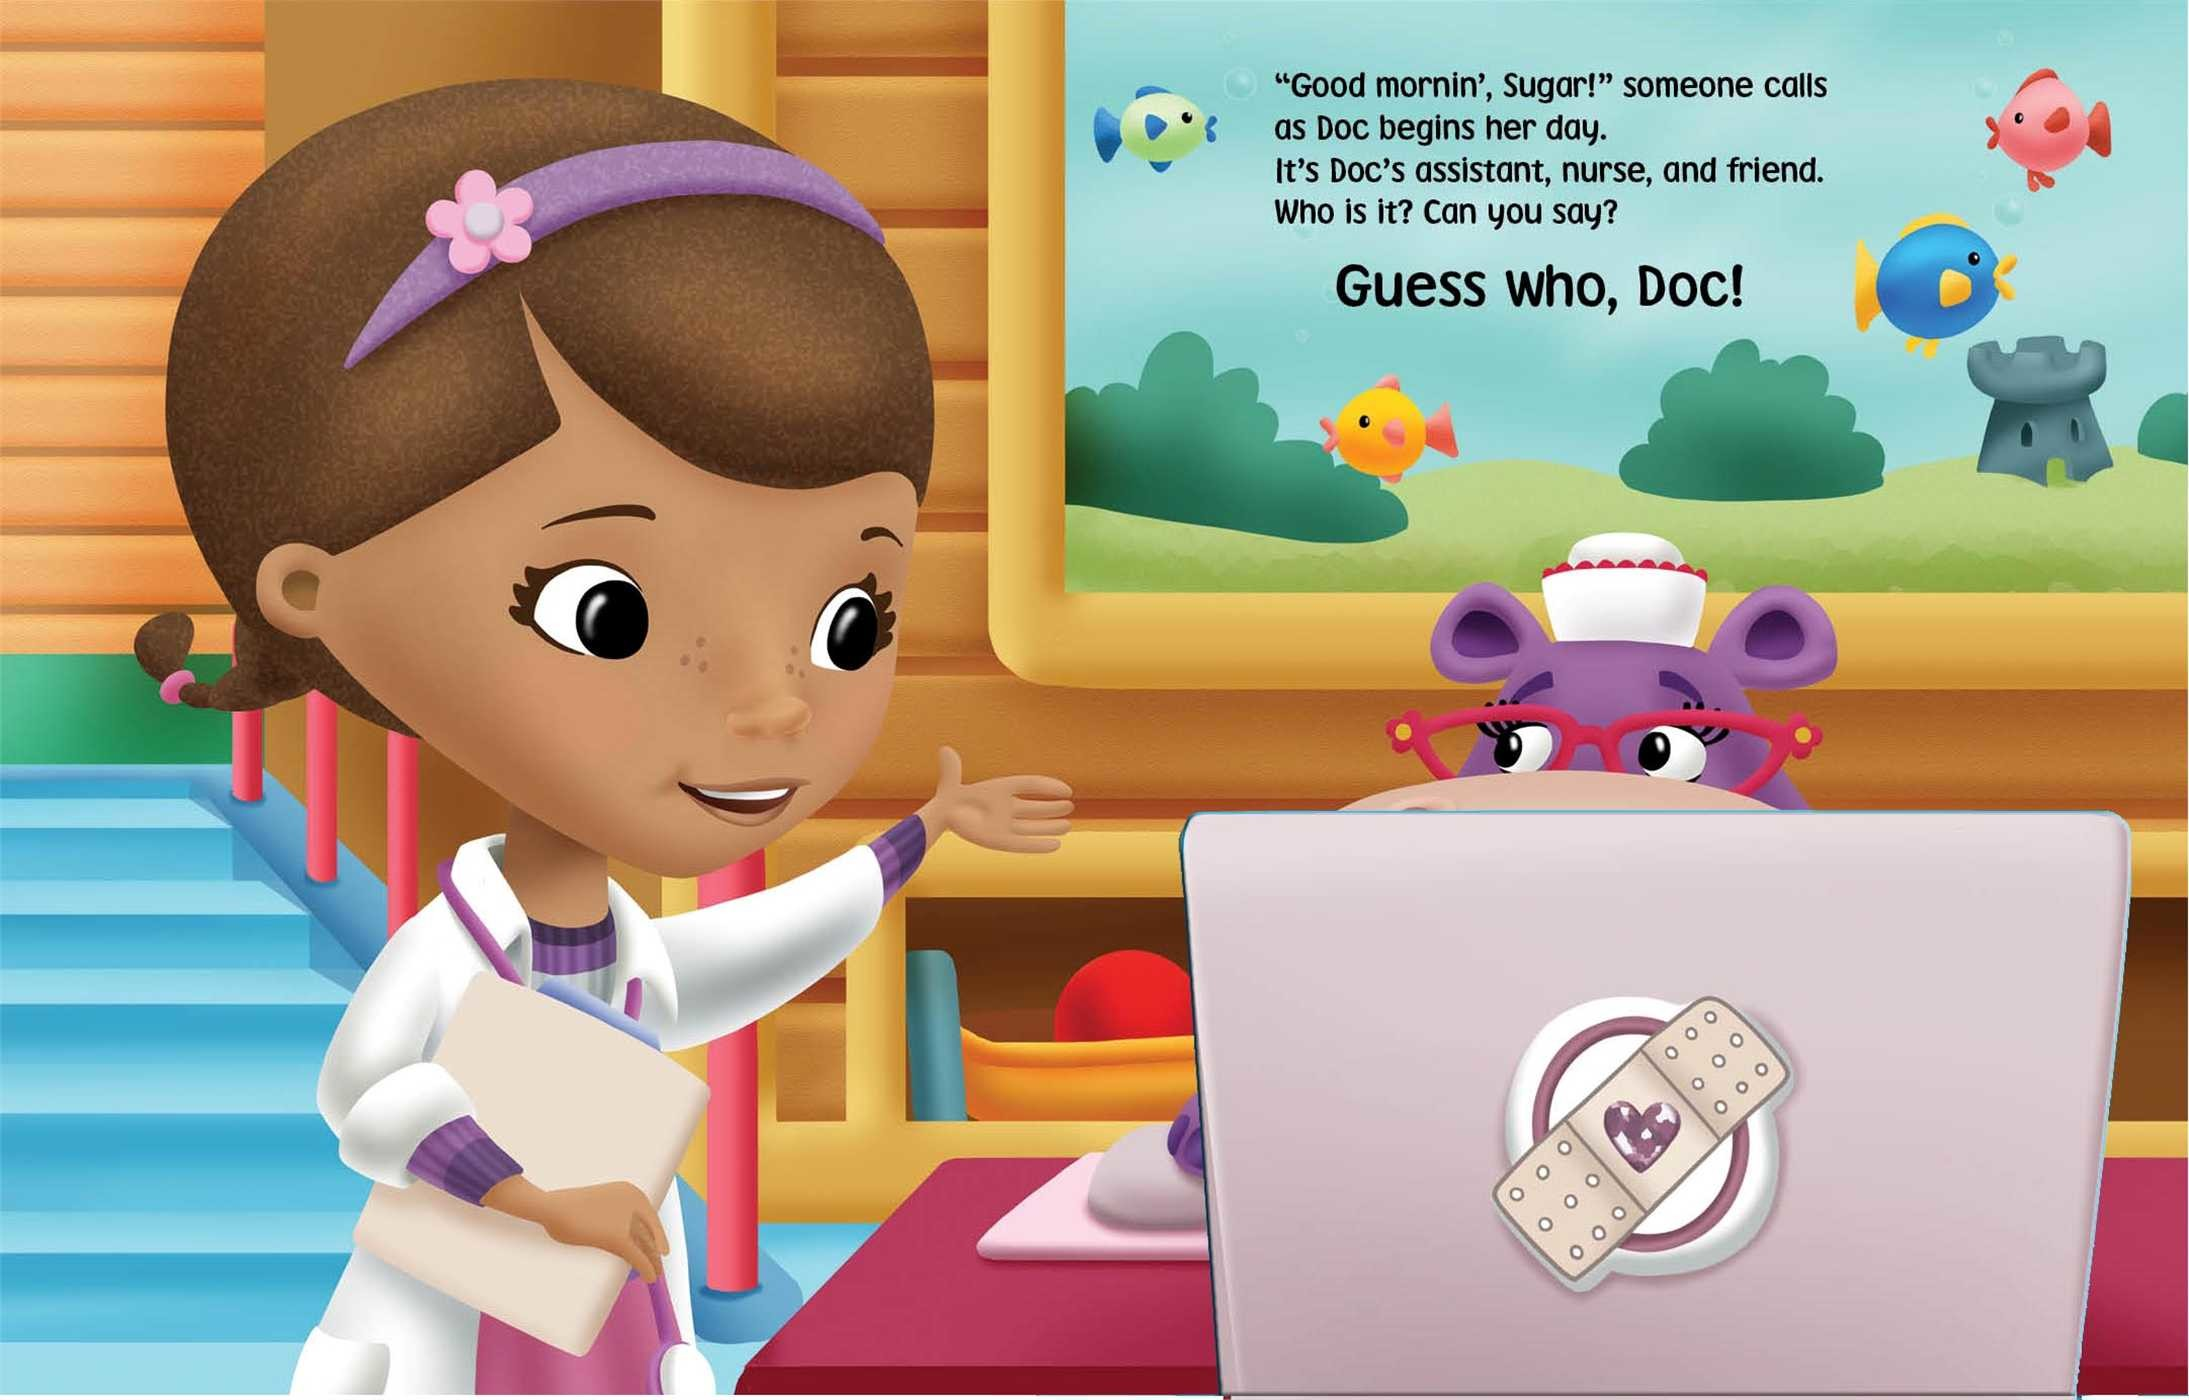 Disney doc mcstuffins guess who doc 9780794430054.in02